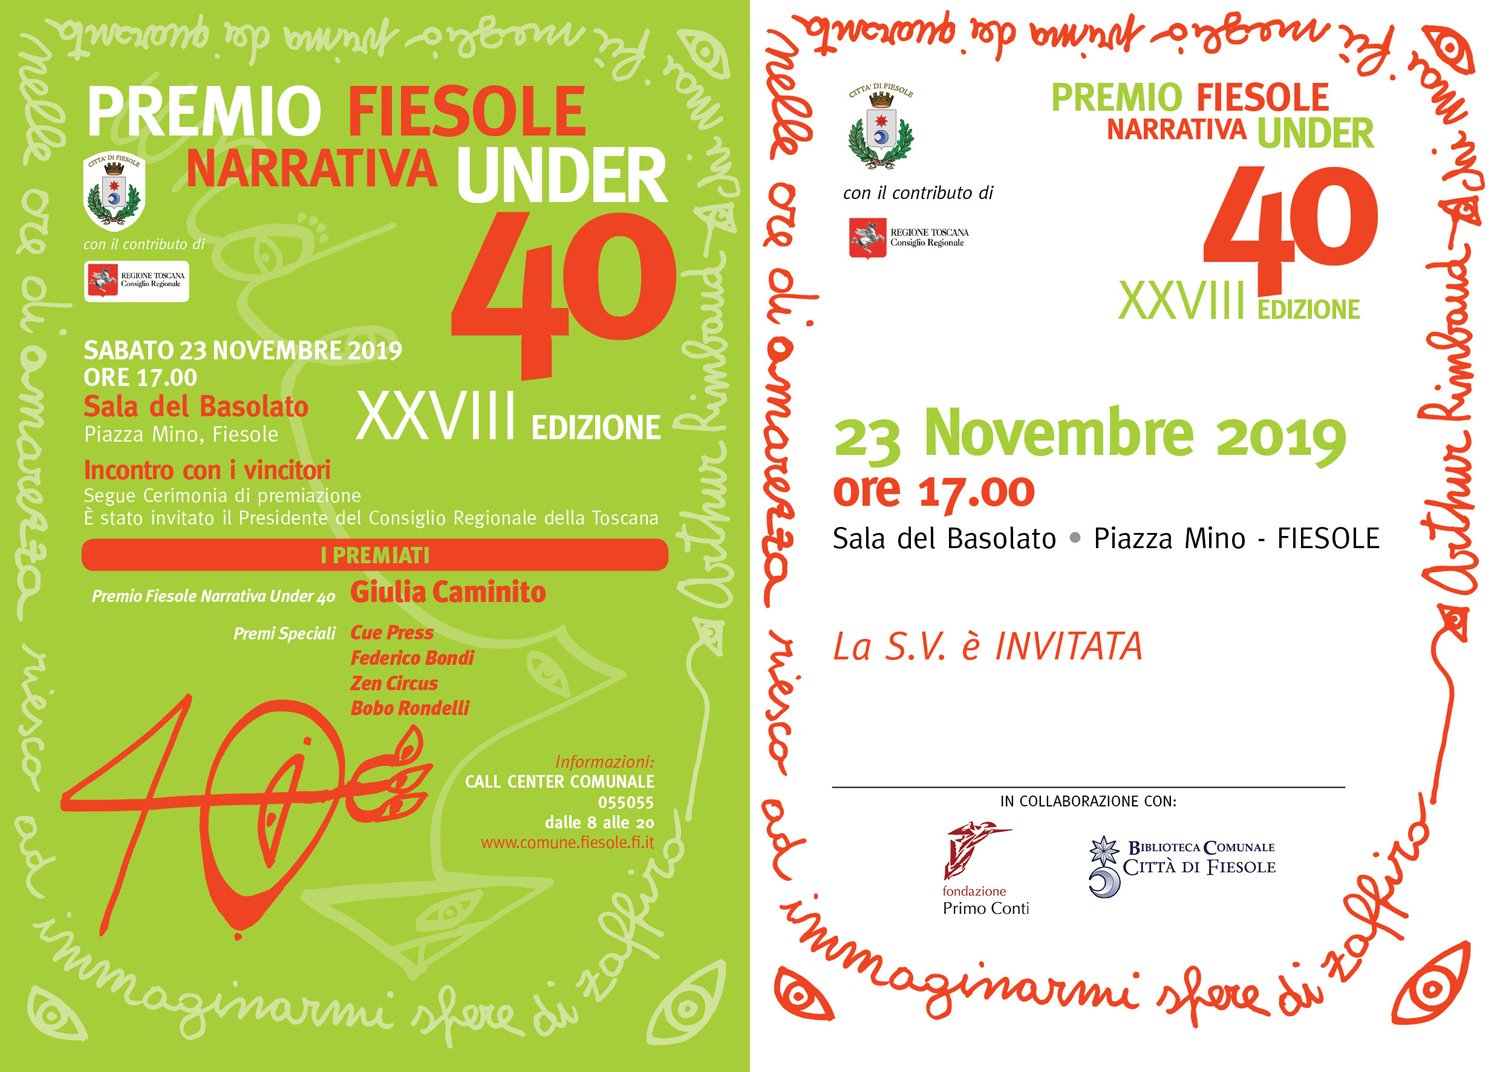 PREMIO FIESOLE NARRATIVA UNDER 40 - XXVIII edizione